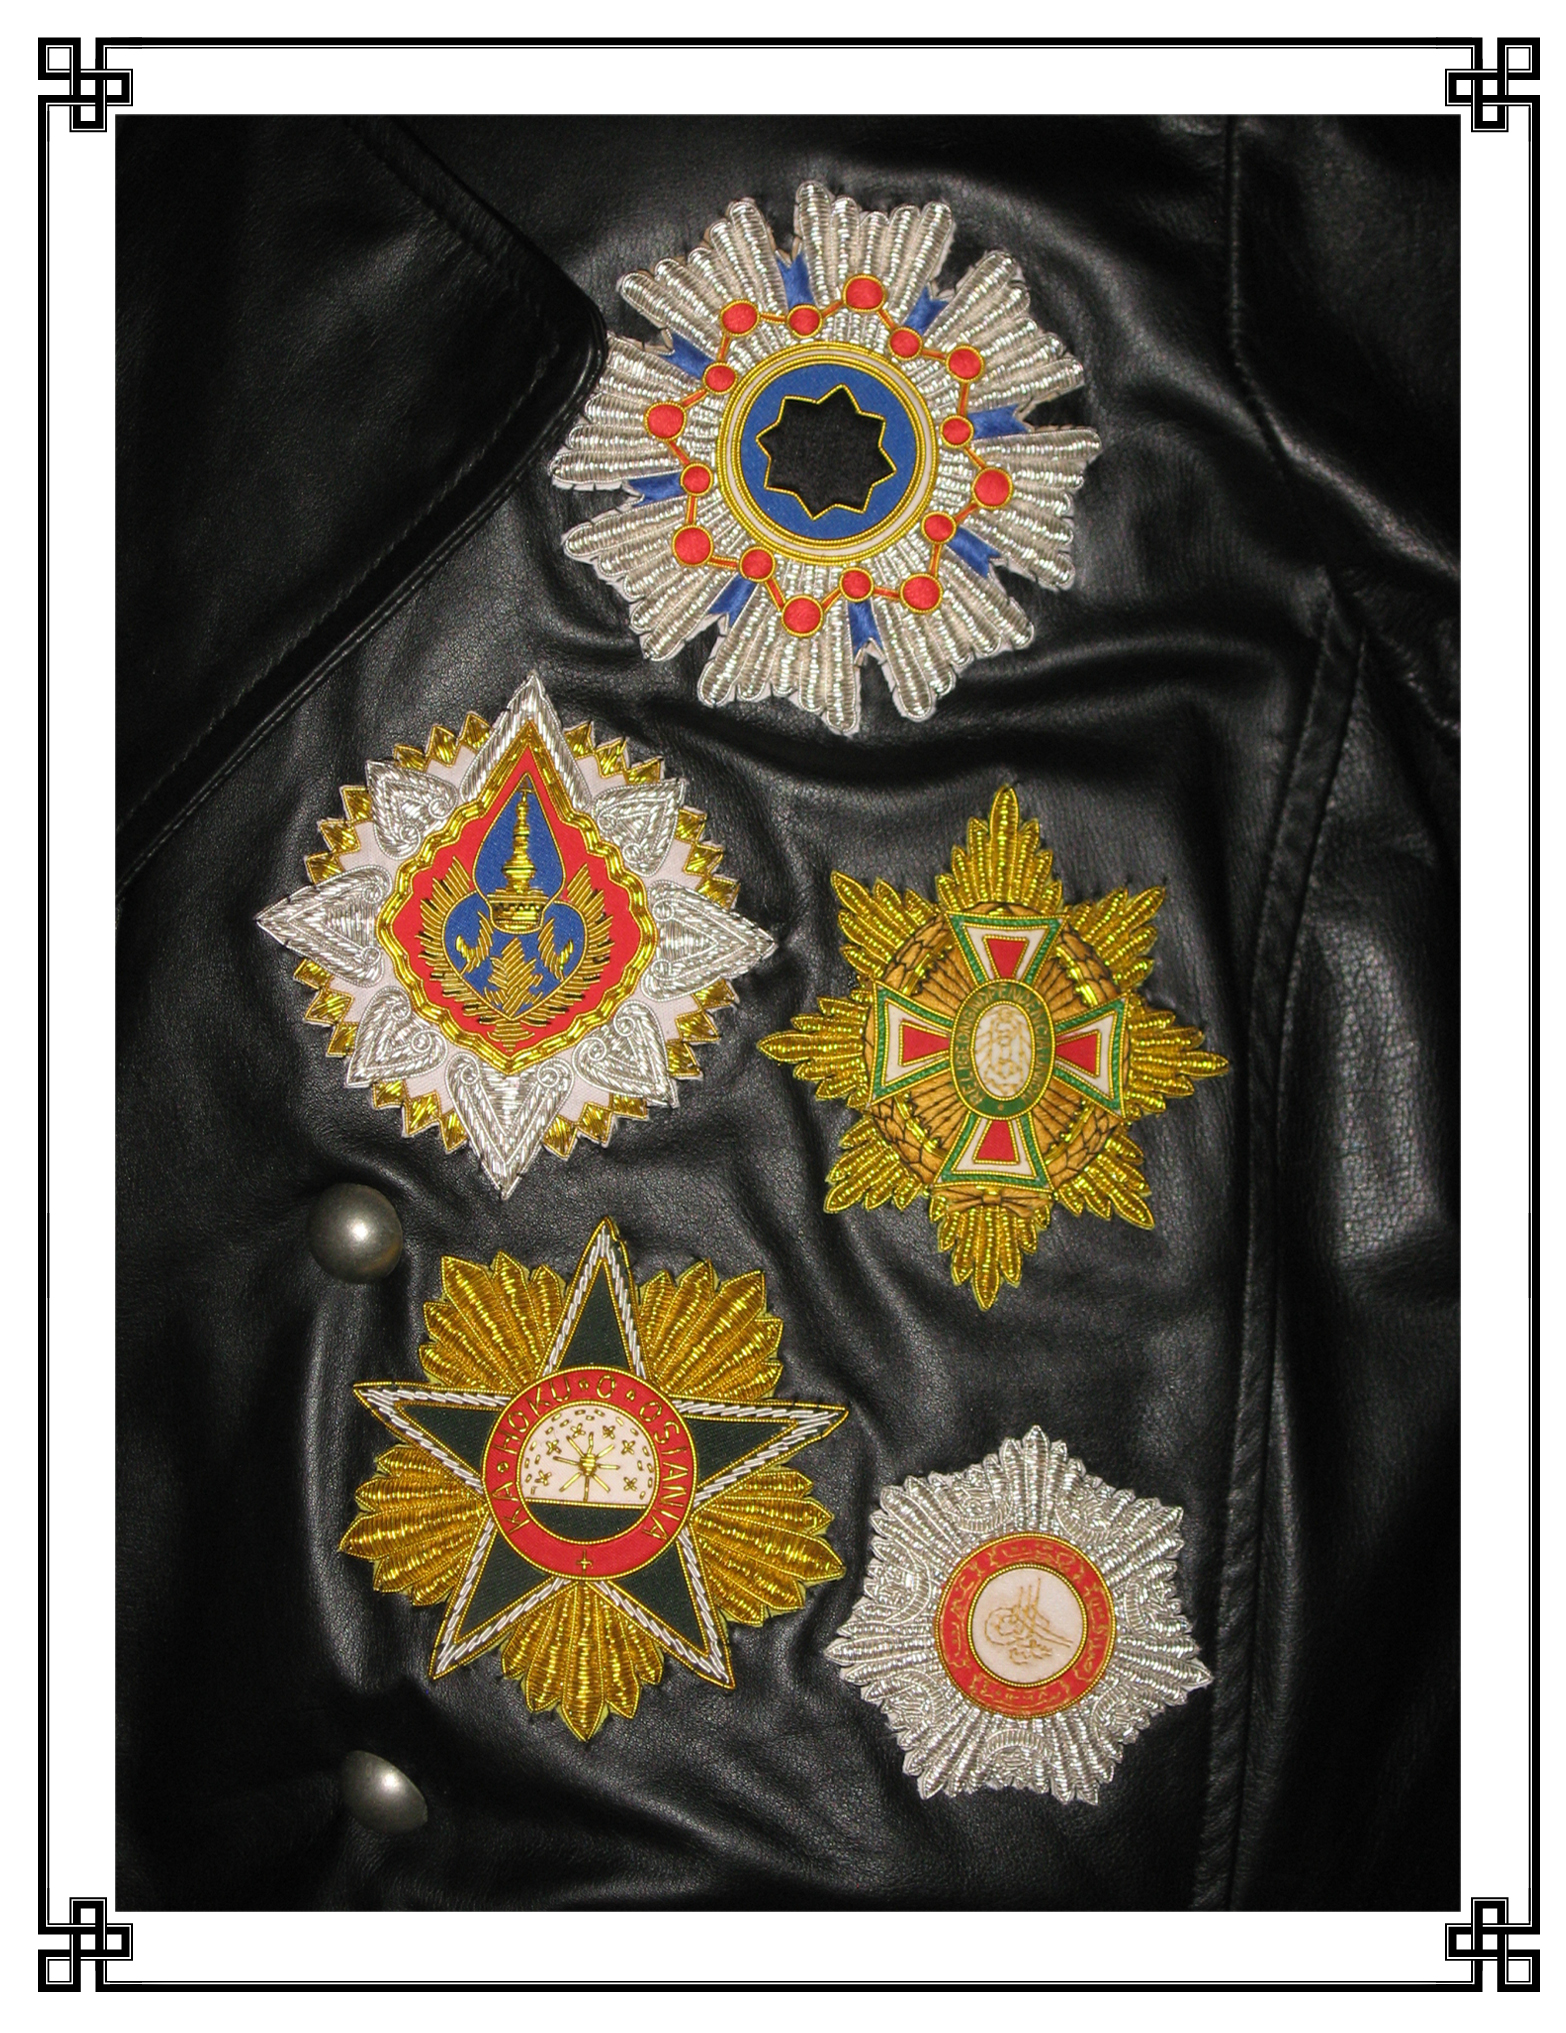 These 'like-buttons', indicative of the wearer's 'friending' by various crowned heads of state, were amongst the most sought-after complements to any court dress. While attainable through such endeavors as the painting of a bowdlerized portrait or the sycophantic dedication of a musical composition, like-buttons were most readily acquired by means of being oneself an aristocrat and, therefore, more or less distantly related to awarding monarchs and better stationed to award reciprocal 'friendings' in turn. While normally given as enameled and bejeweled badges of precious metal, the examples displayed here decorate an aviator's greatcoat. Thus, they are instead embroidered in gilt and silver thread to preclude clasp-punctures to the leather, sharp edges liable to catch on control protuberances and, in instances of extreme popularity {such as those illustrated below}, being abruptly dragged under in the event of an emergency egress over water.